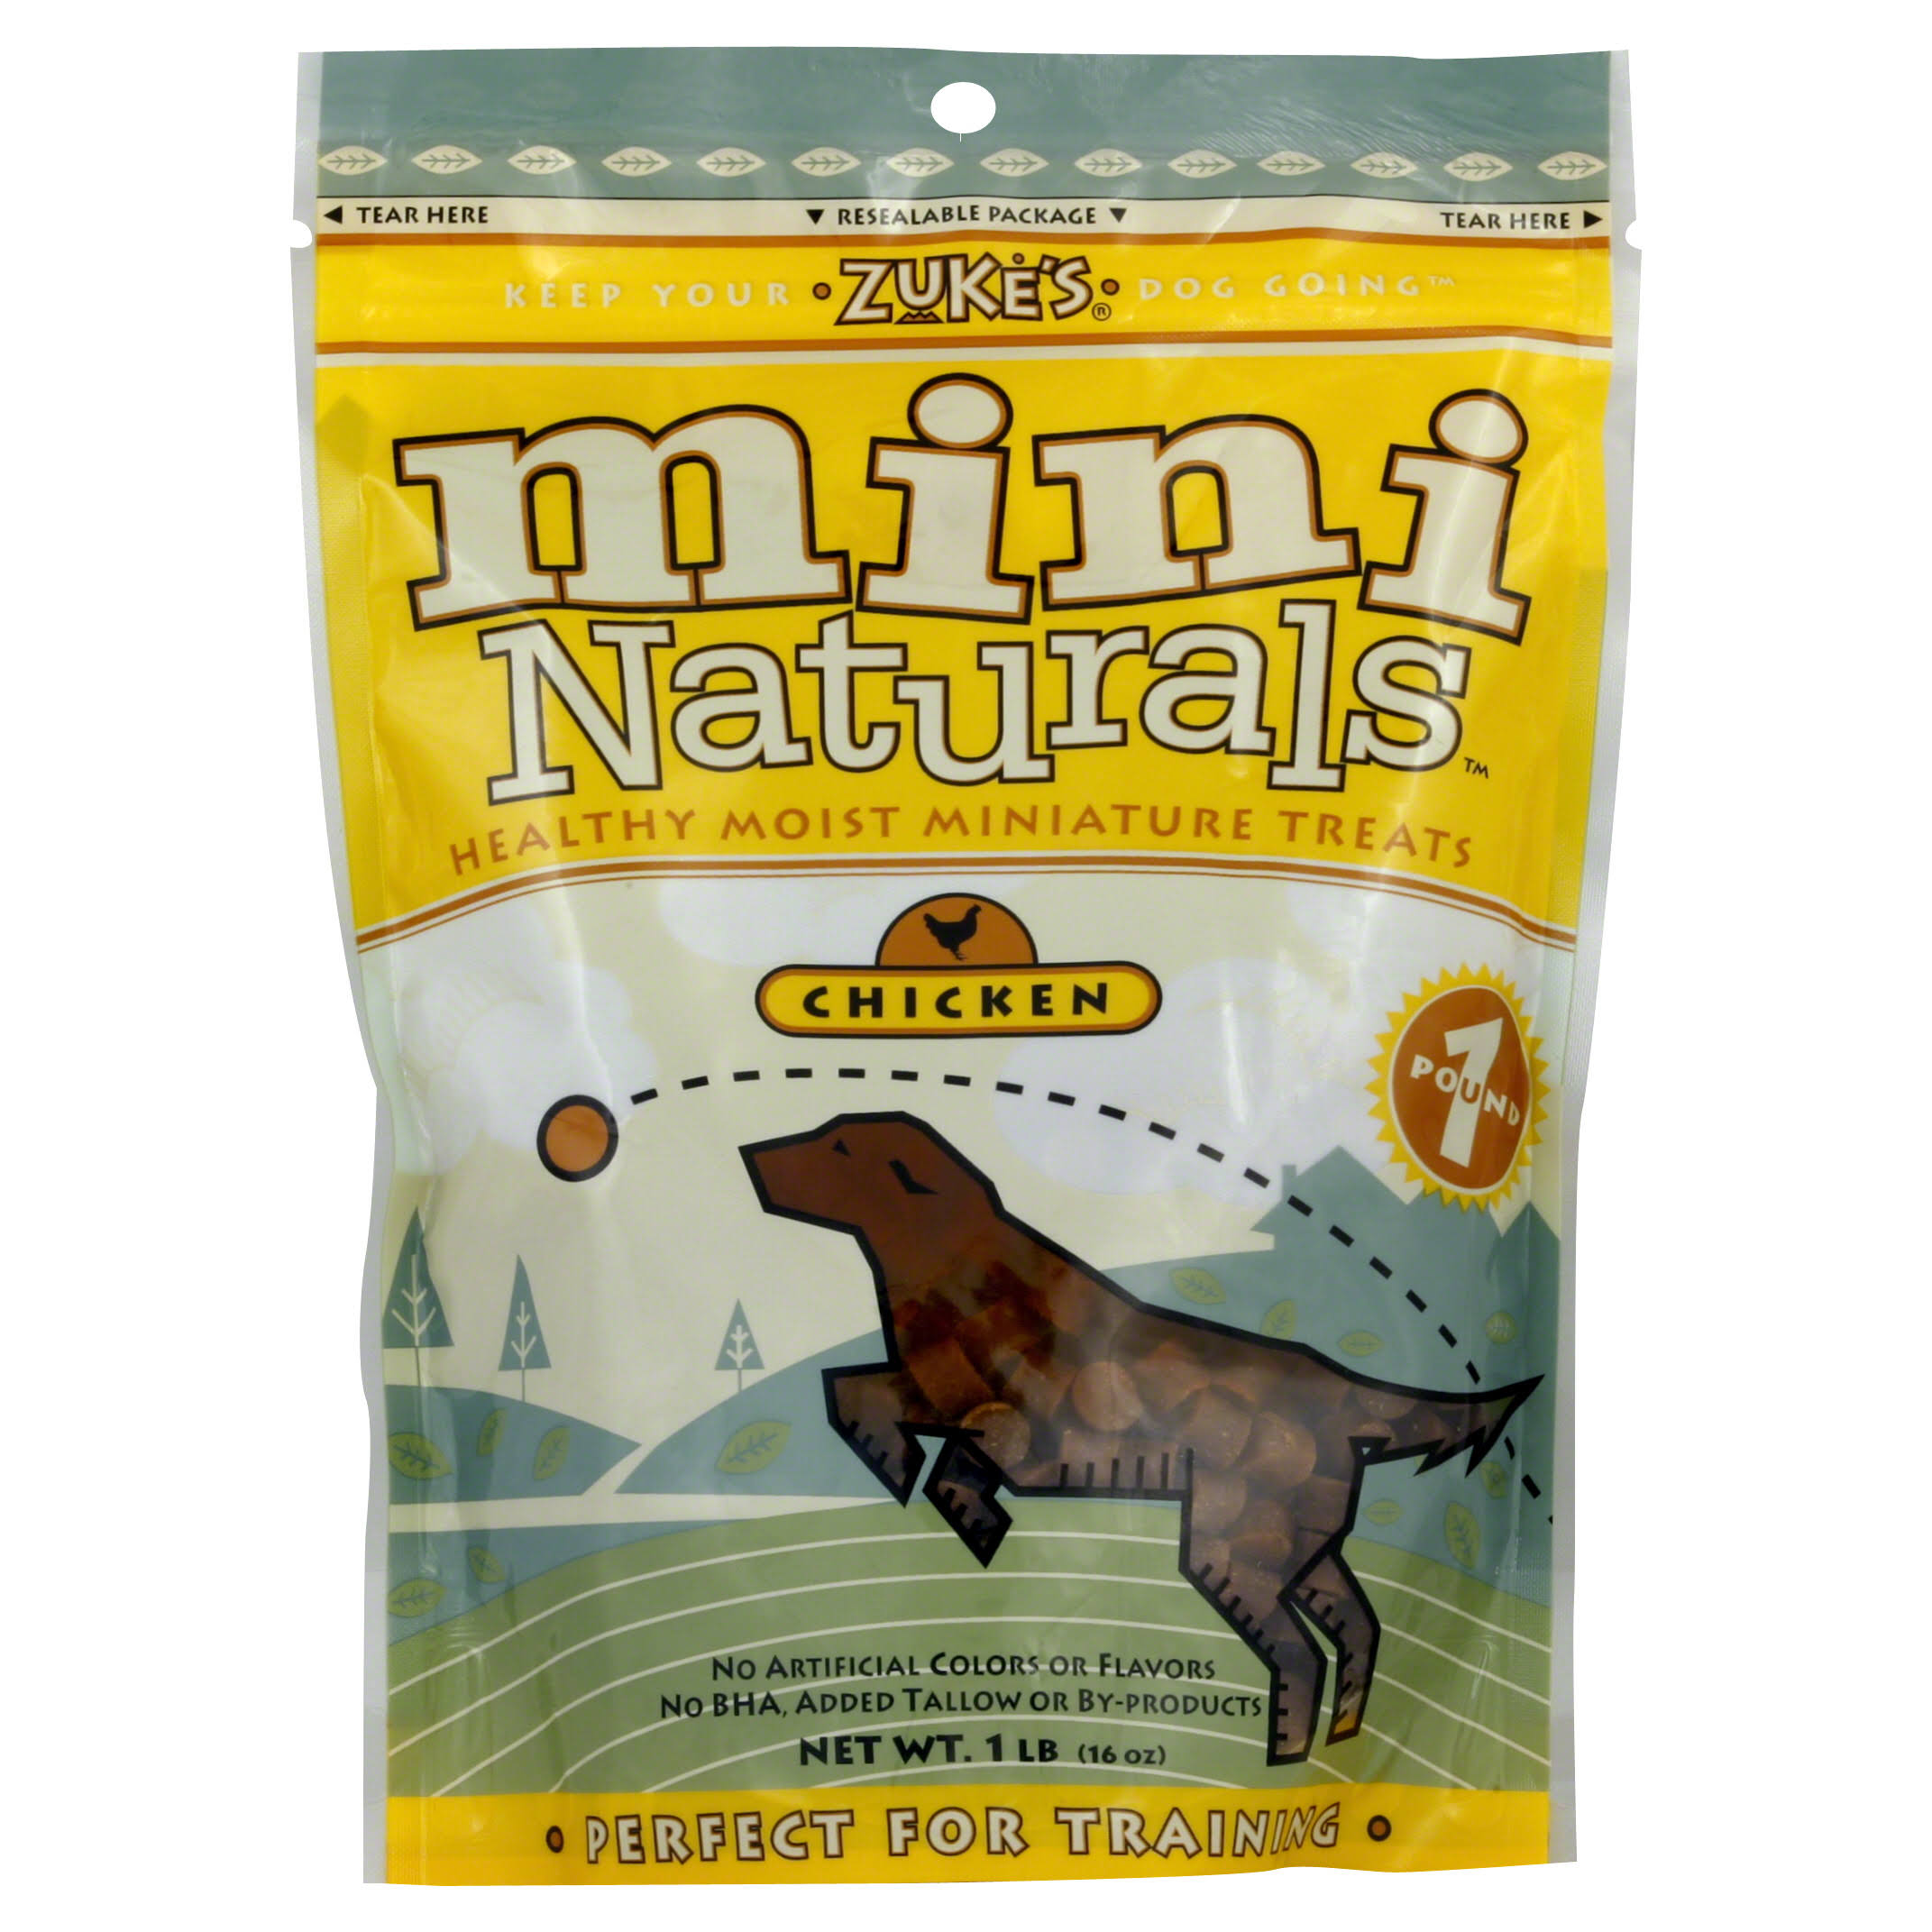 Zuke's Mini Naturals Healthy Moist Miniature Dog Treats - 1lb